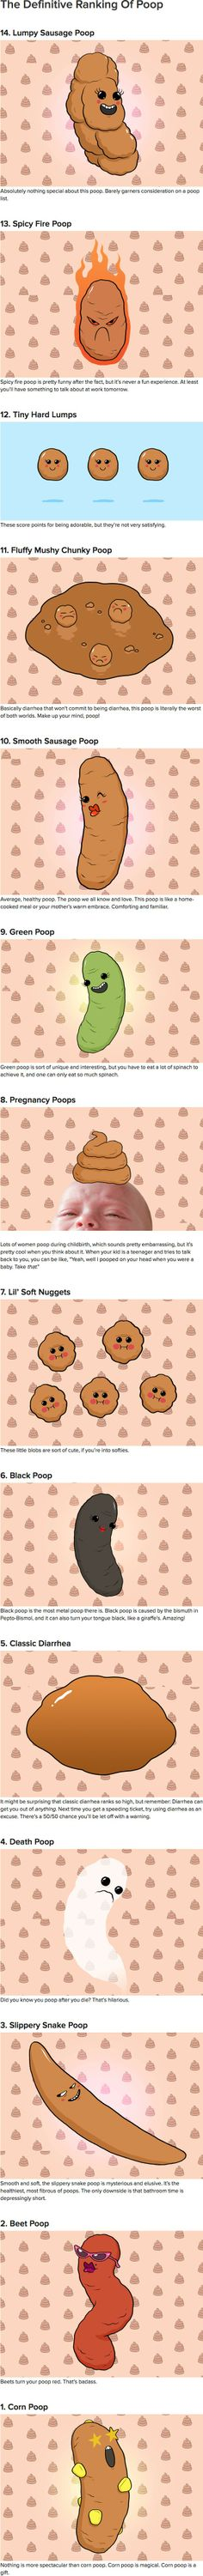 The Definitive Ranking Of Poop